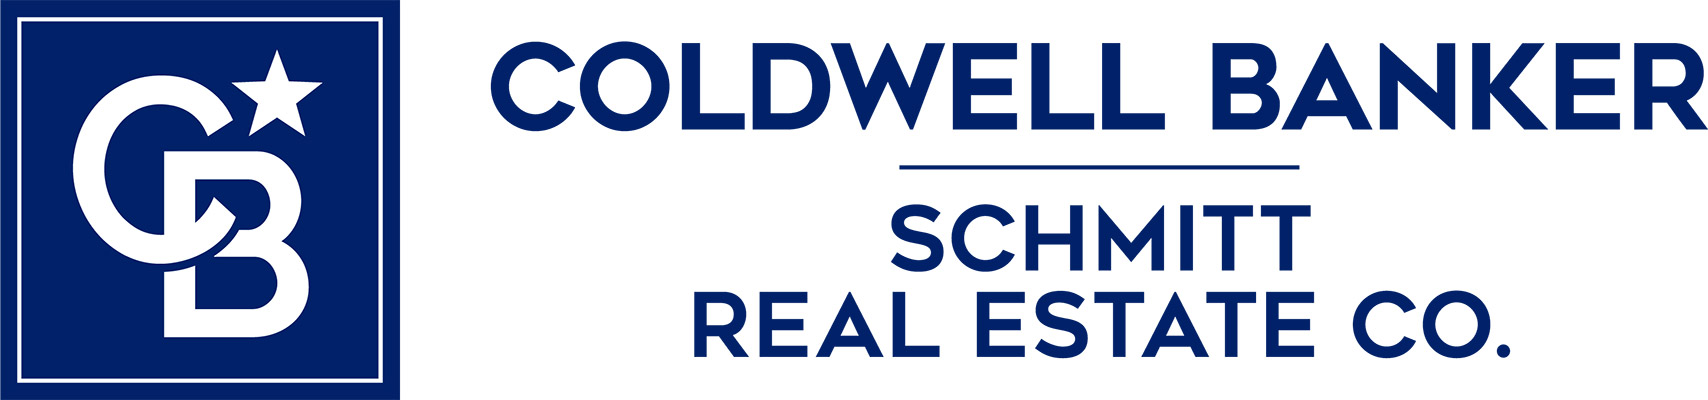 Richard Lively - Coldwell Banker Logo